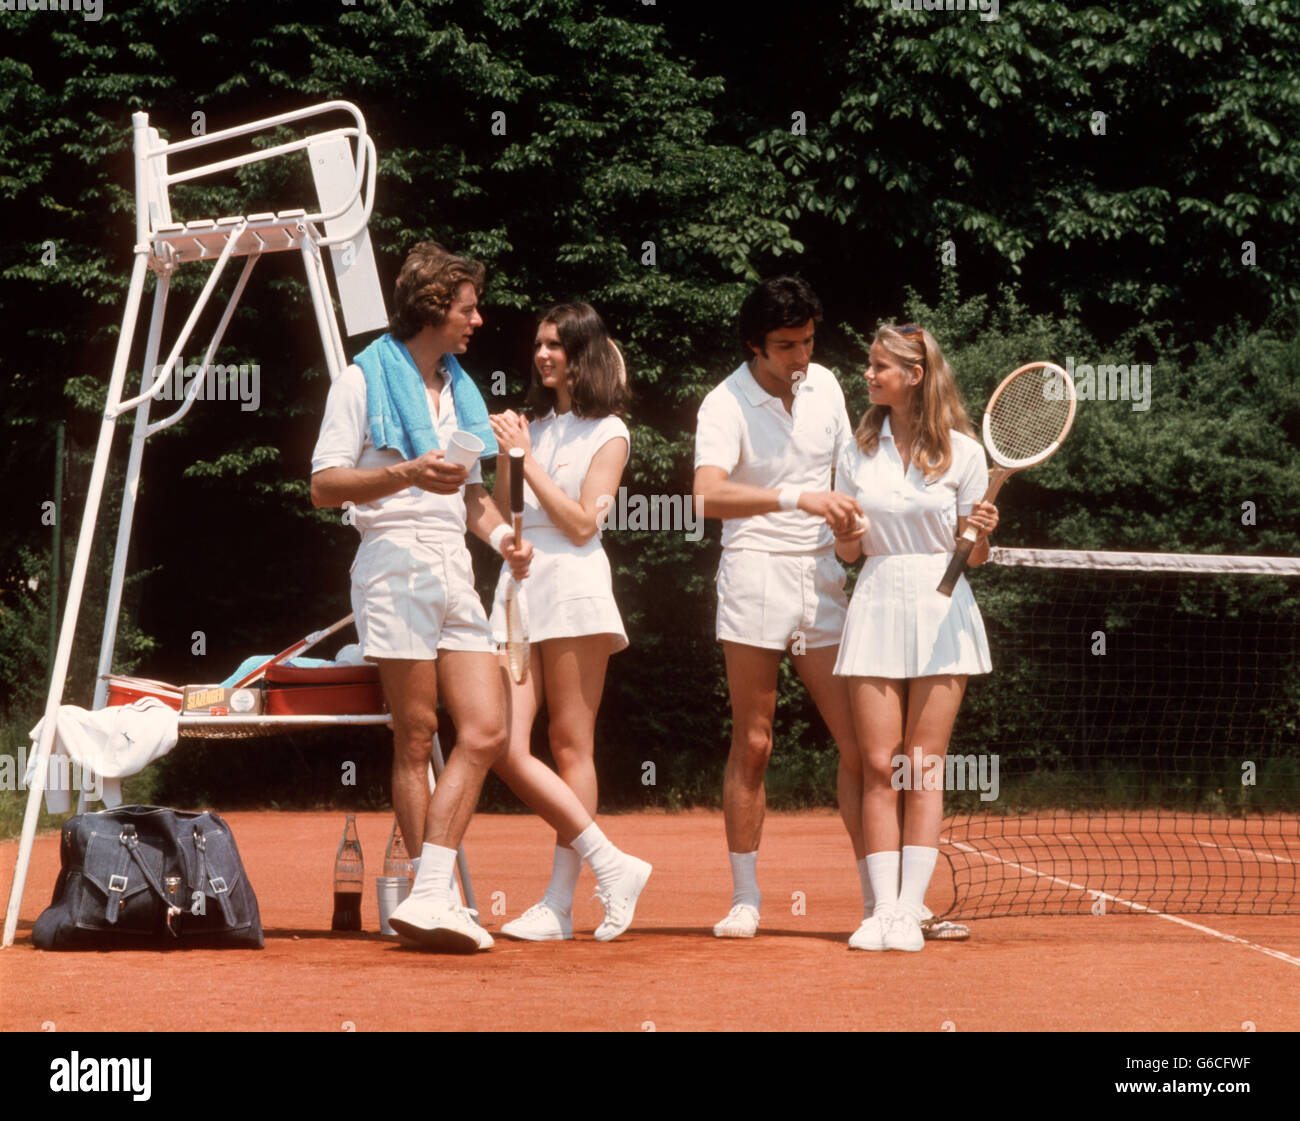 80's tennis clothes for oferta